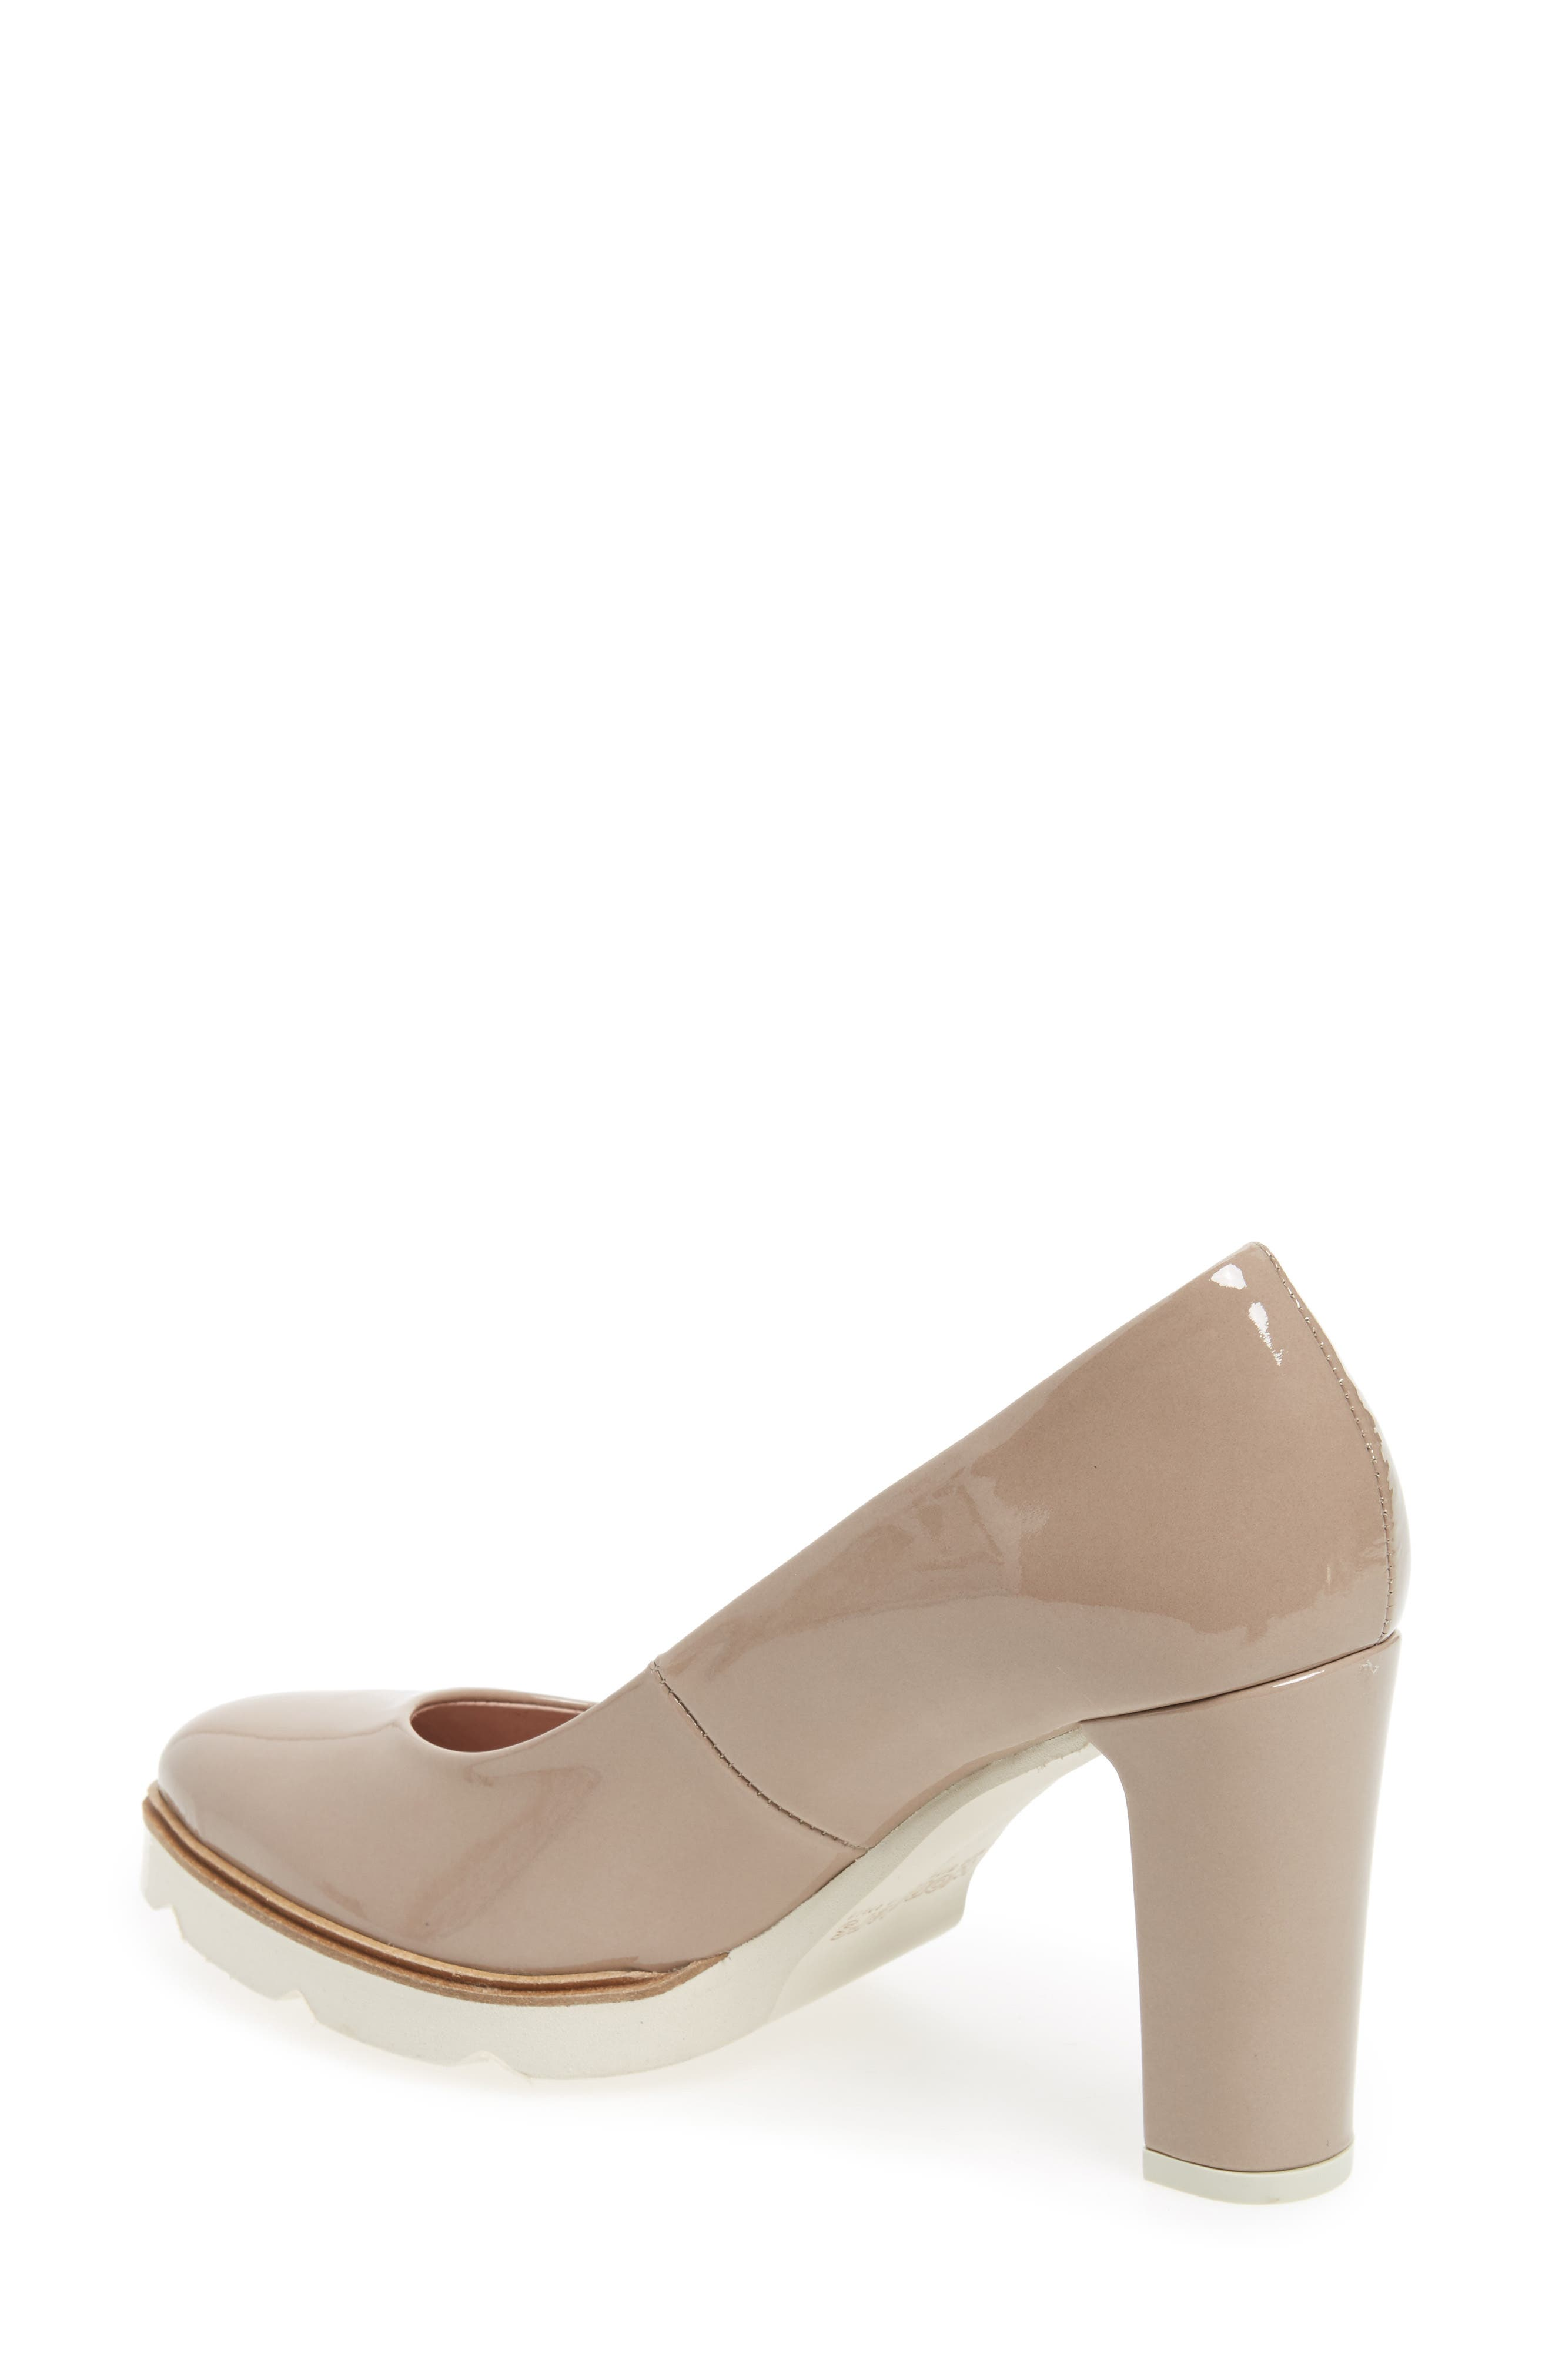 Almond Toe Pump,                             Alternate thumbnail 2, color,                             Taupe Leather